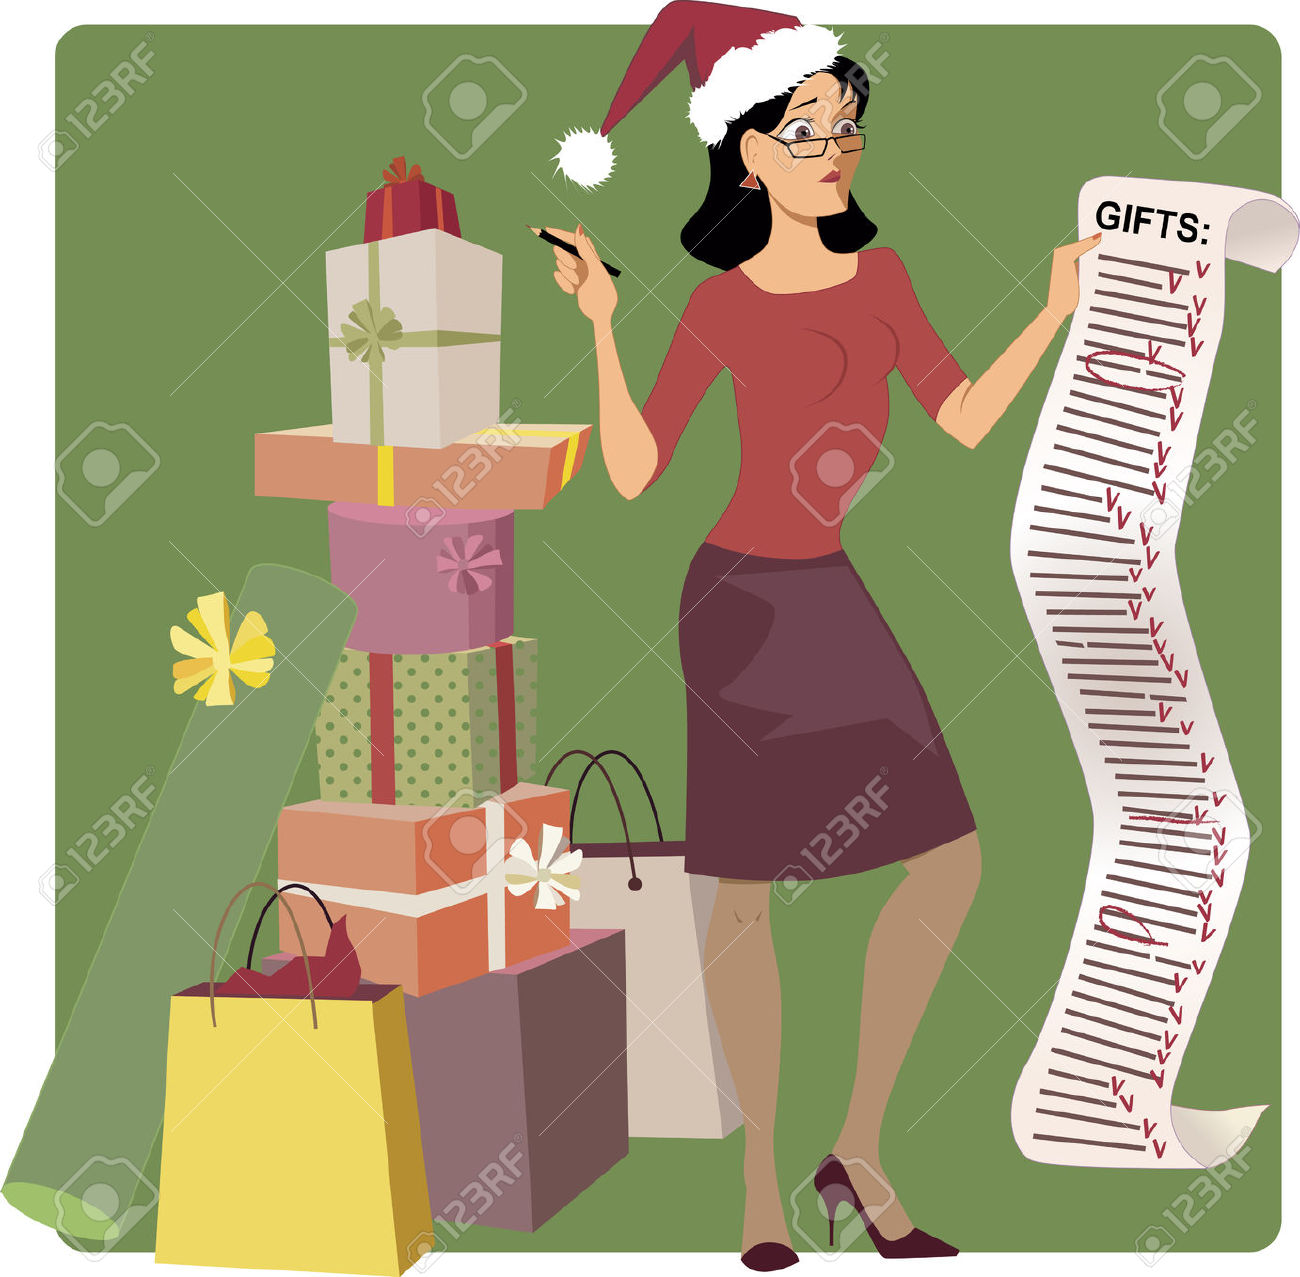 Christmas shopping list clipart image library stock Stressed Woman In A Santa Hat Crossing Out Names From A Long ... image library stock